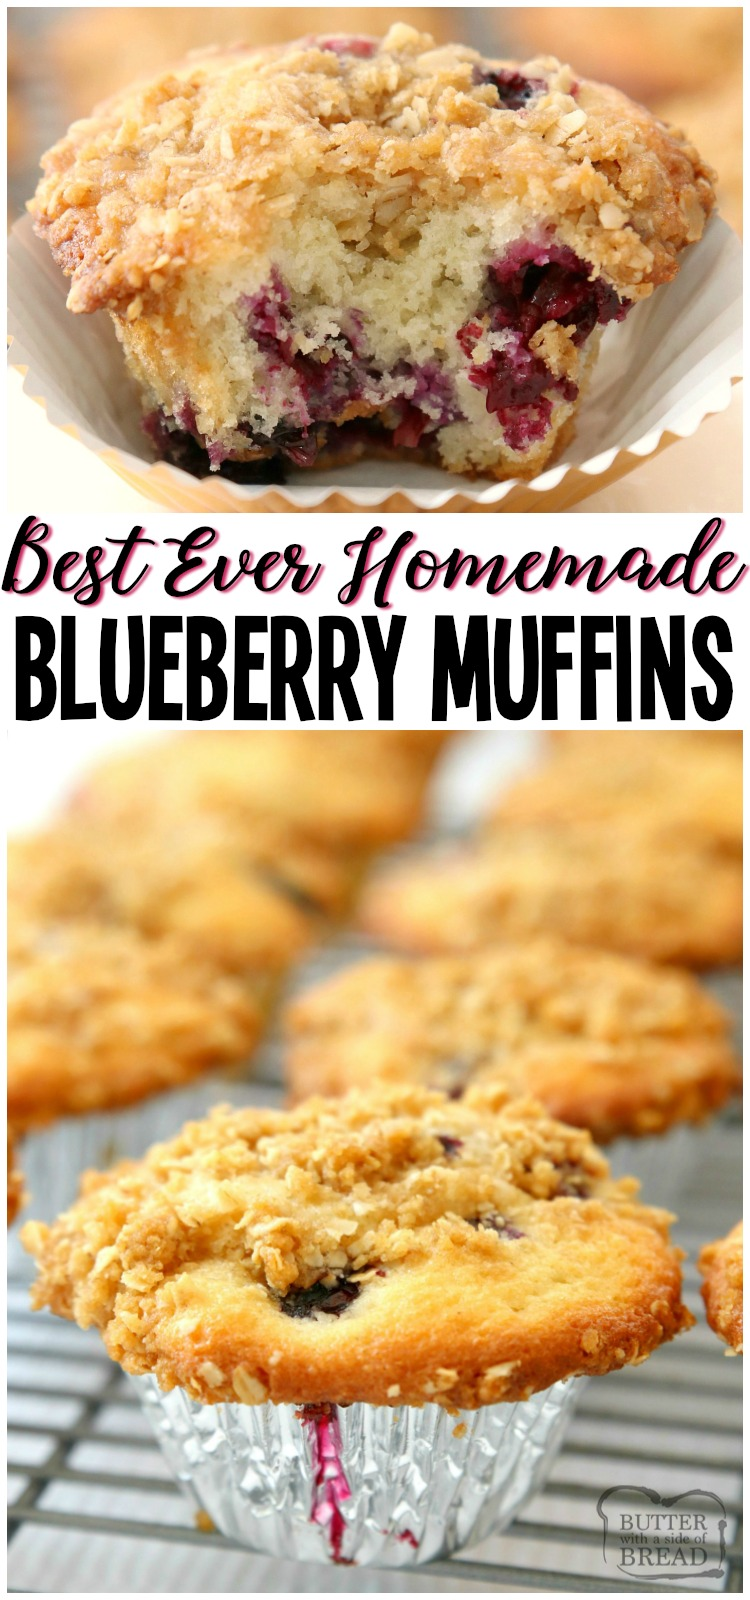 Best Blueberry Muffins that are light, flavorful and full of sweet, juicy blueberries! Family favorite recipe that's been perfected over the years. Everyone loves the buttery streusel topping! #blueberry #muffins #breakfast #baking #blueberries #recipe from BUTTER WITH A SIDE OF BREAD